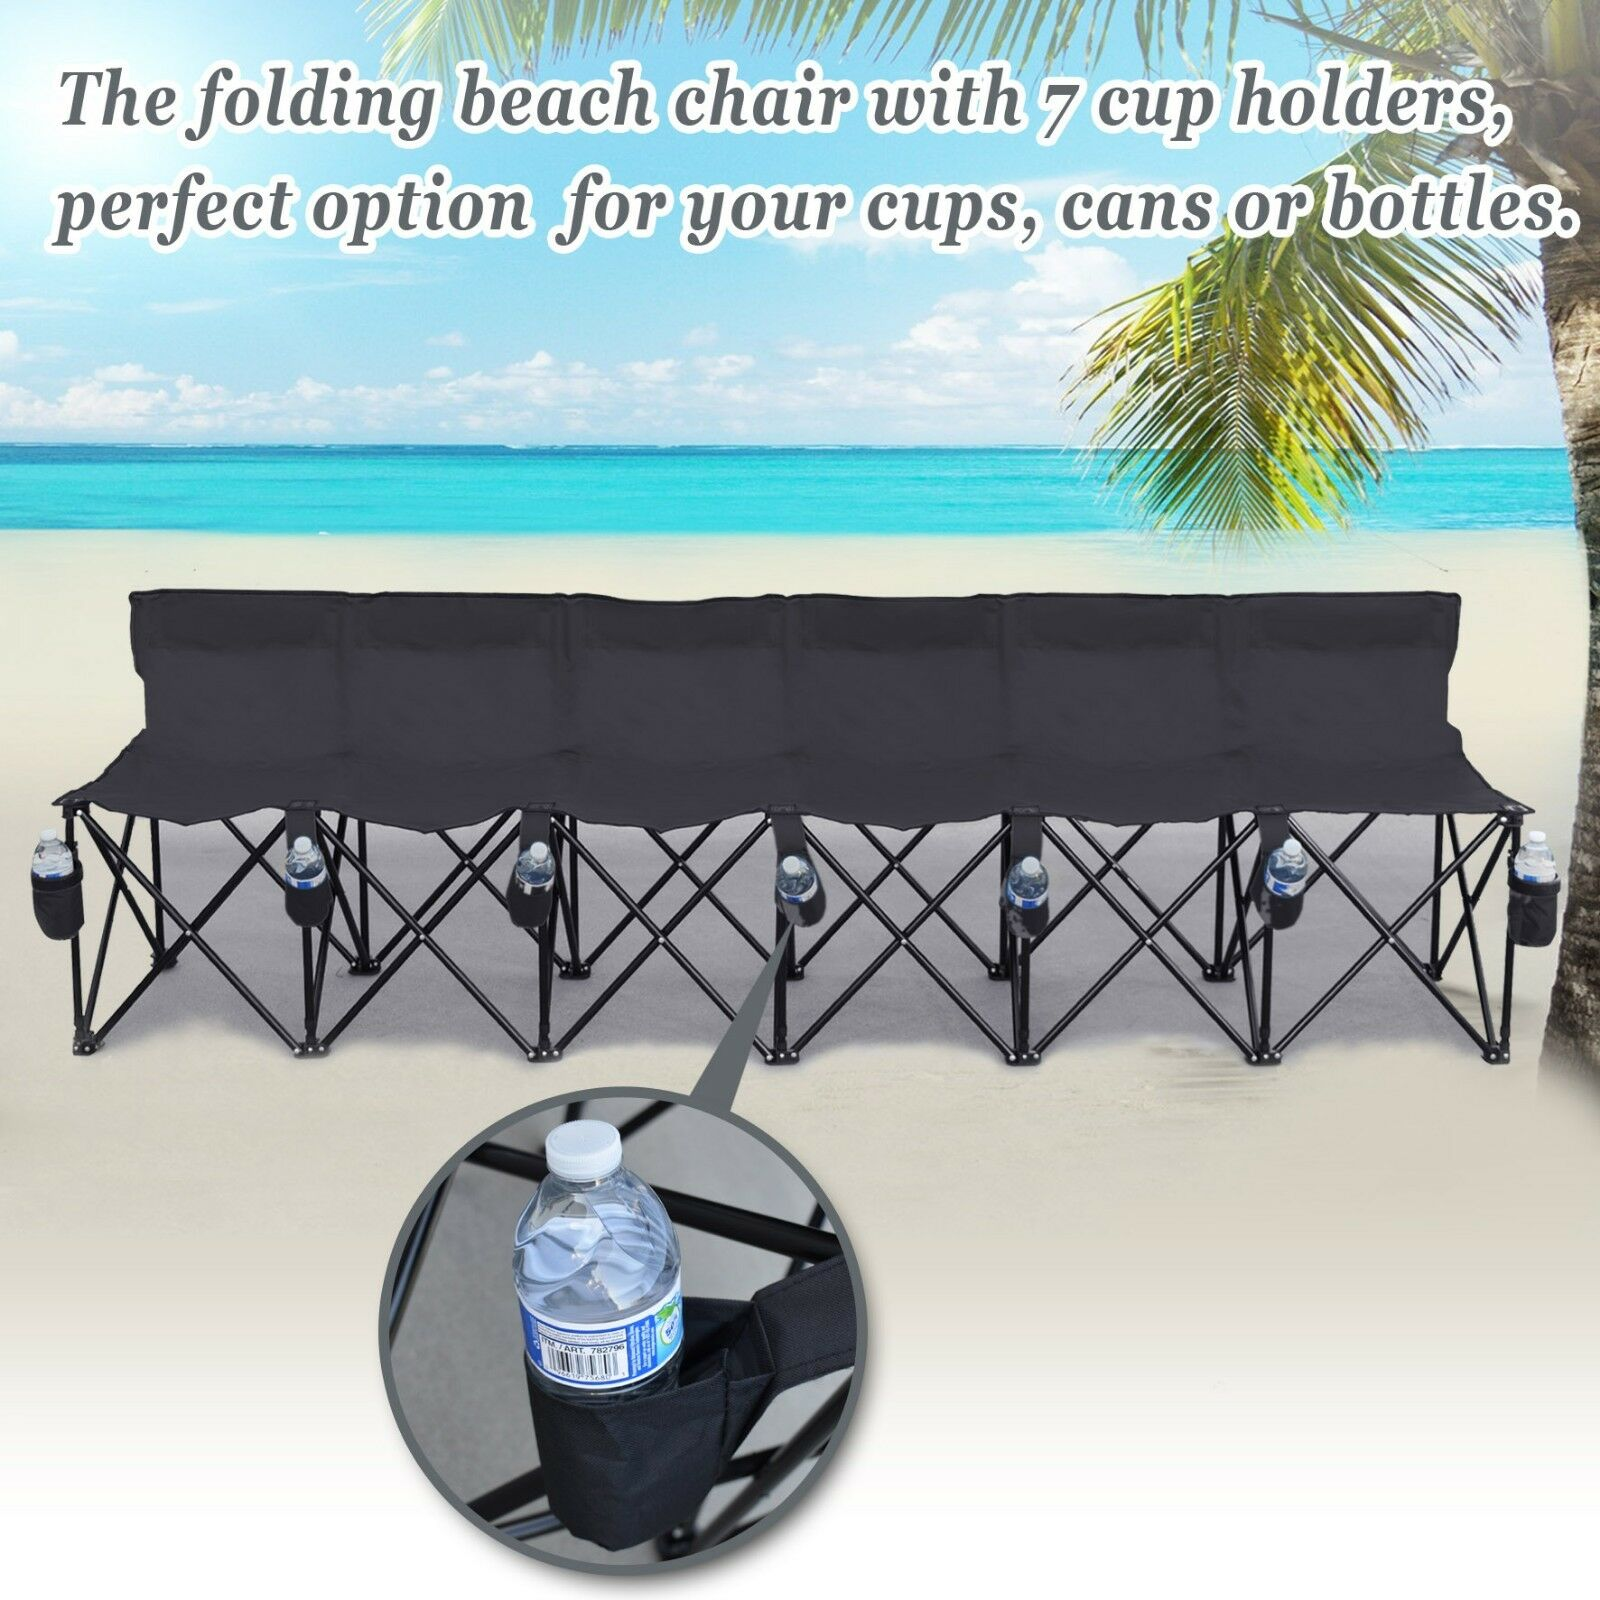 6 Seater Folding Chair SportsSideline Portable Bench w Cup Holder and Carry Bag